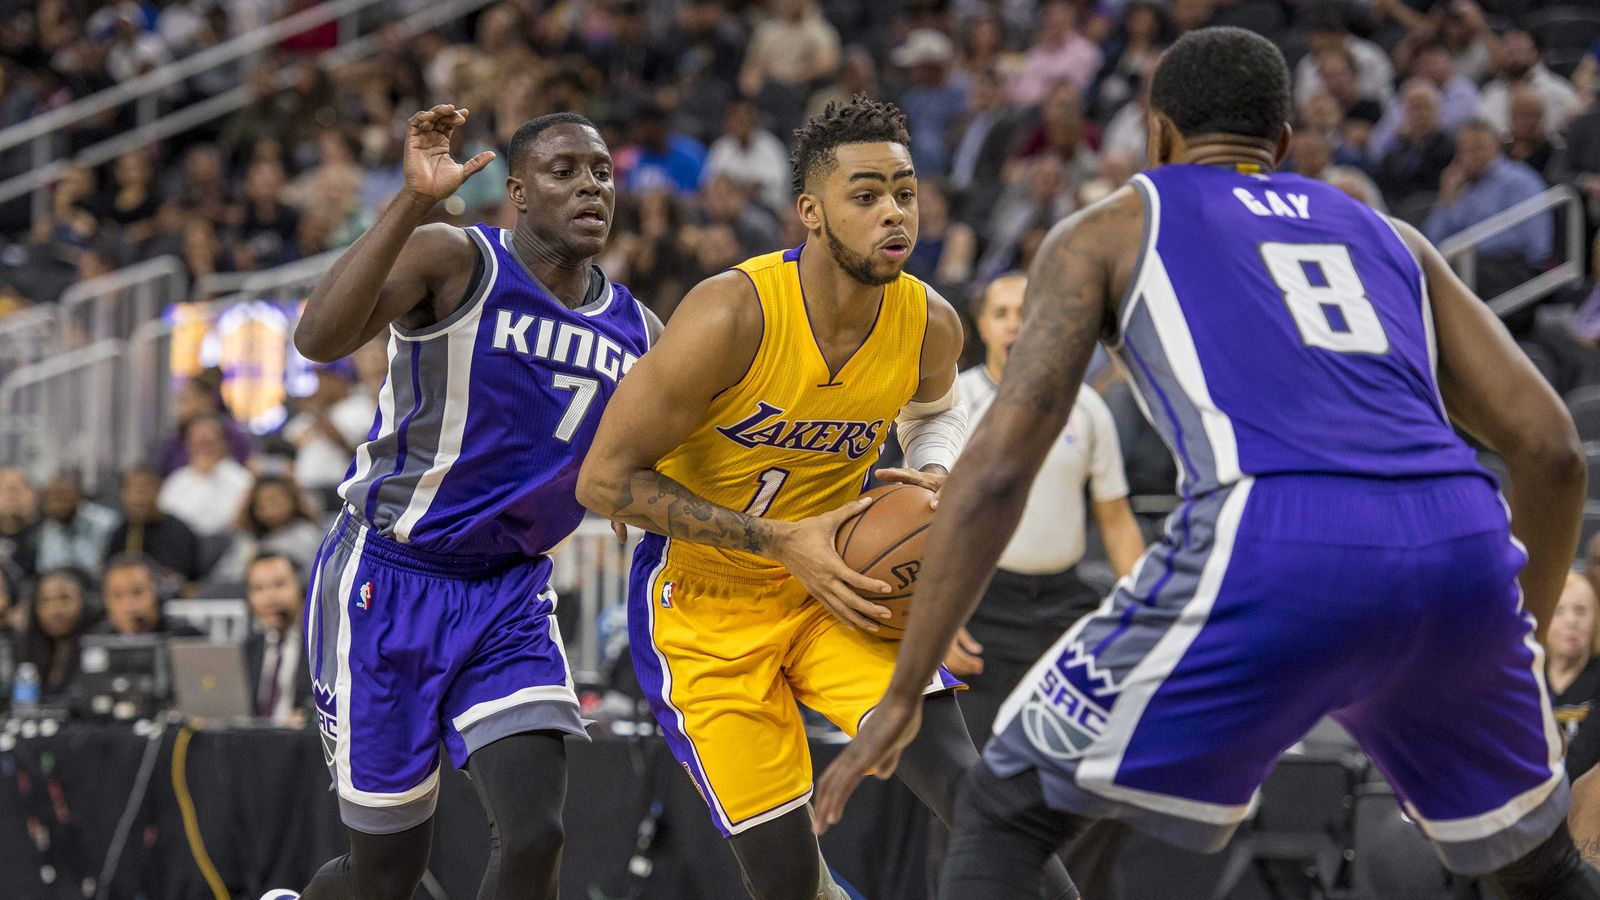 Lakers vs. Kings final score: D'Angelo Russell bounces back but Lakers lose 116-104 - Silver ...